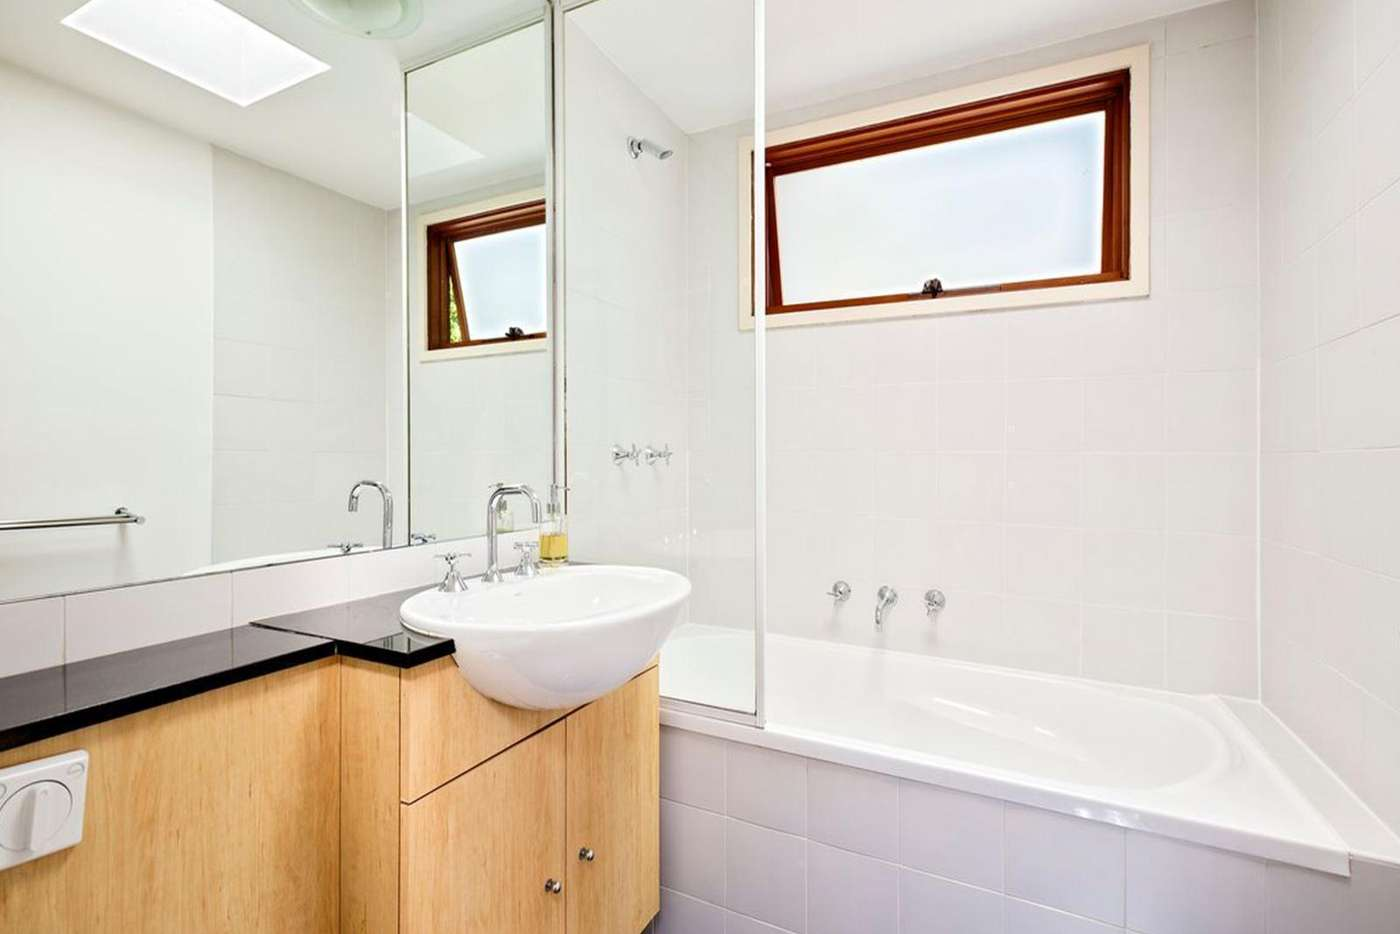 Sixth view of Homely house listing, 14c Rocklands Road, Wollstonecraft NSW 2065